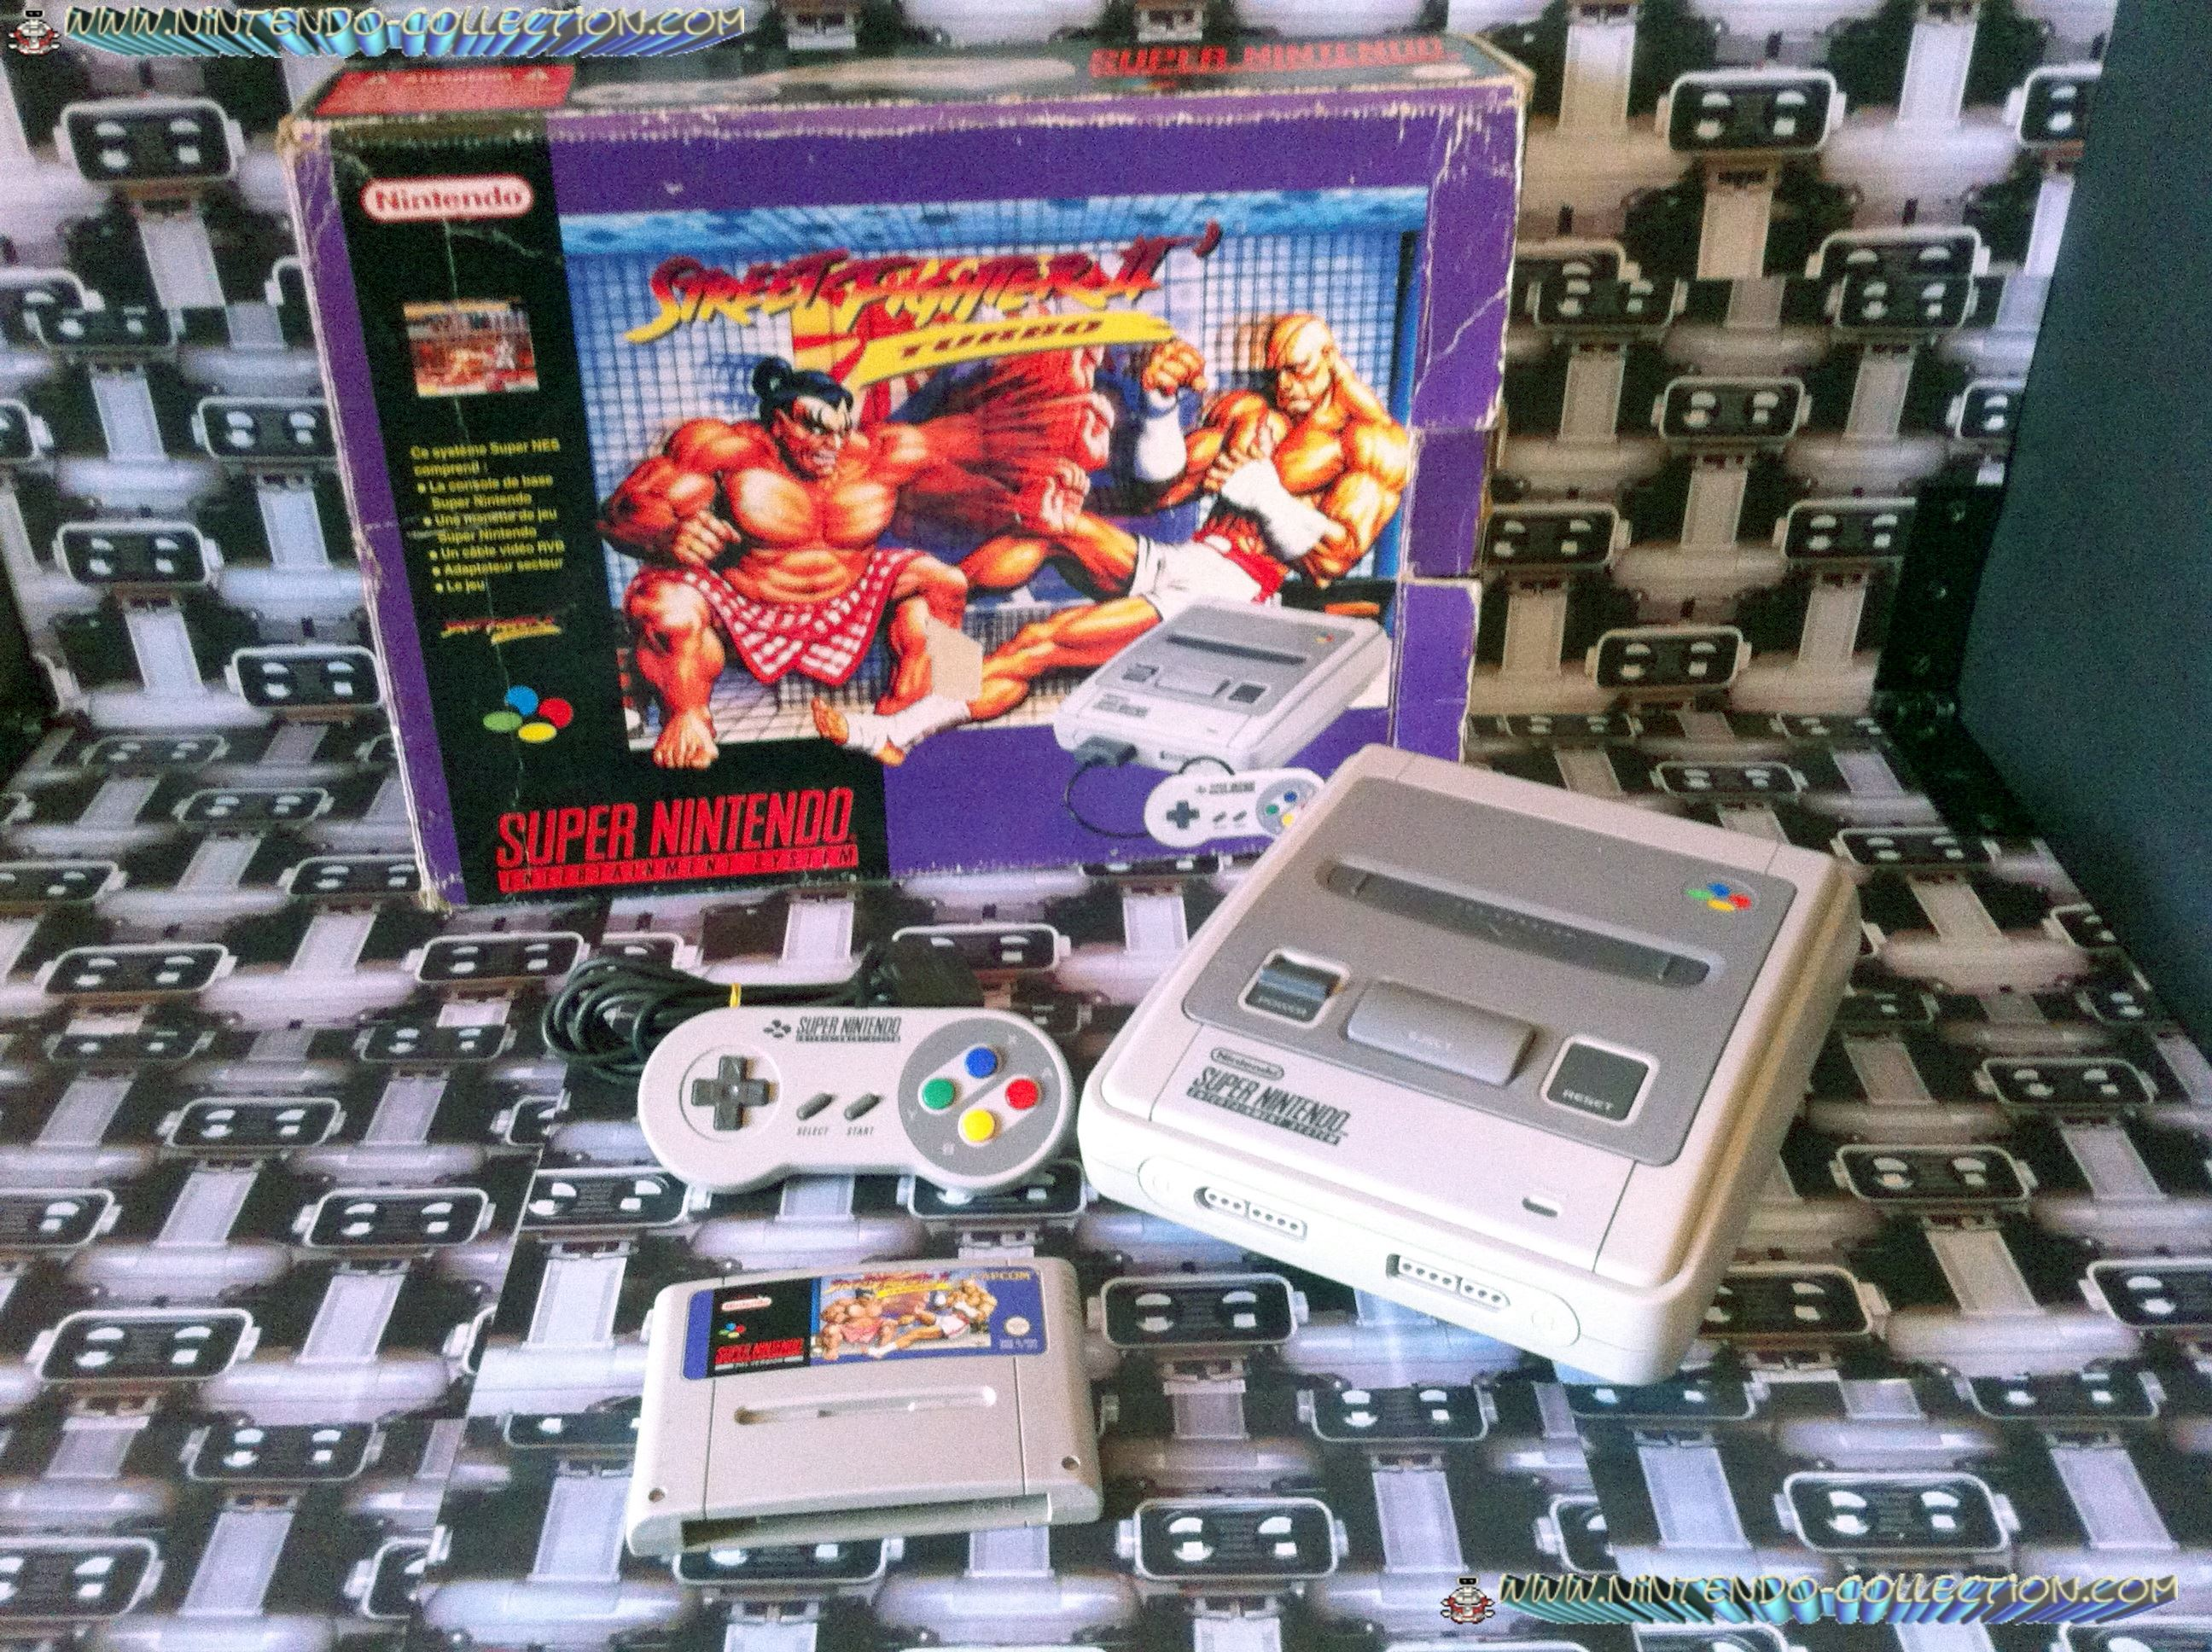 www.nintendo-collection.com - Super Nintendo Super Famicom Super Nes Pack Street Fighter 2 Turbo